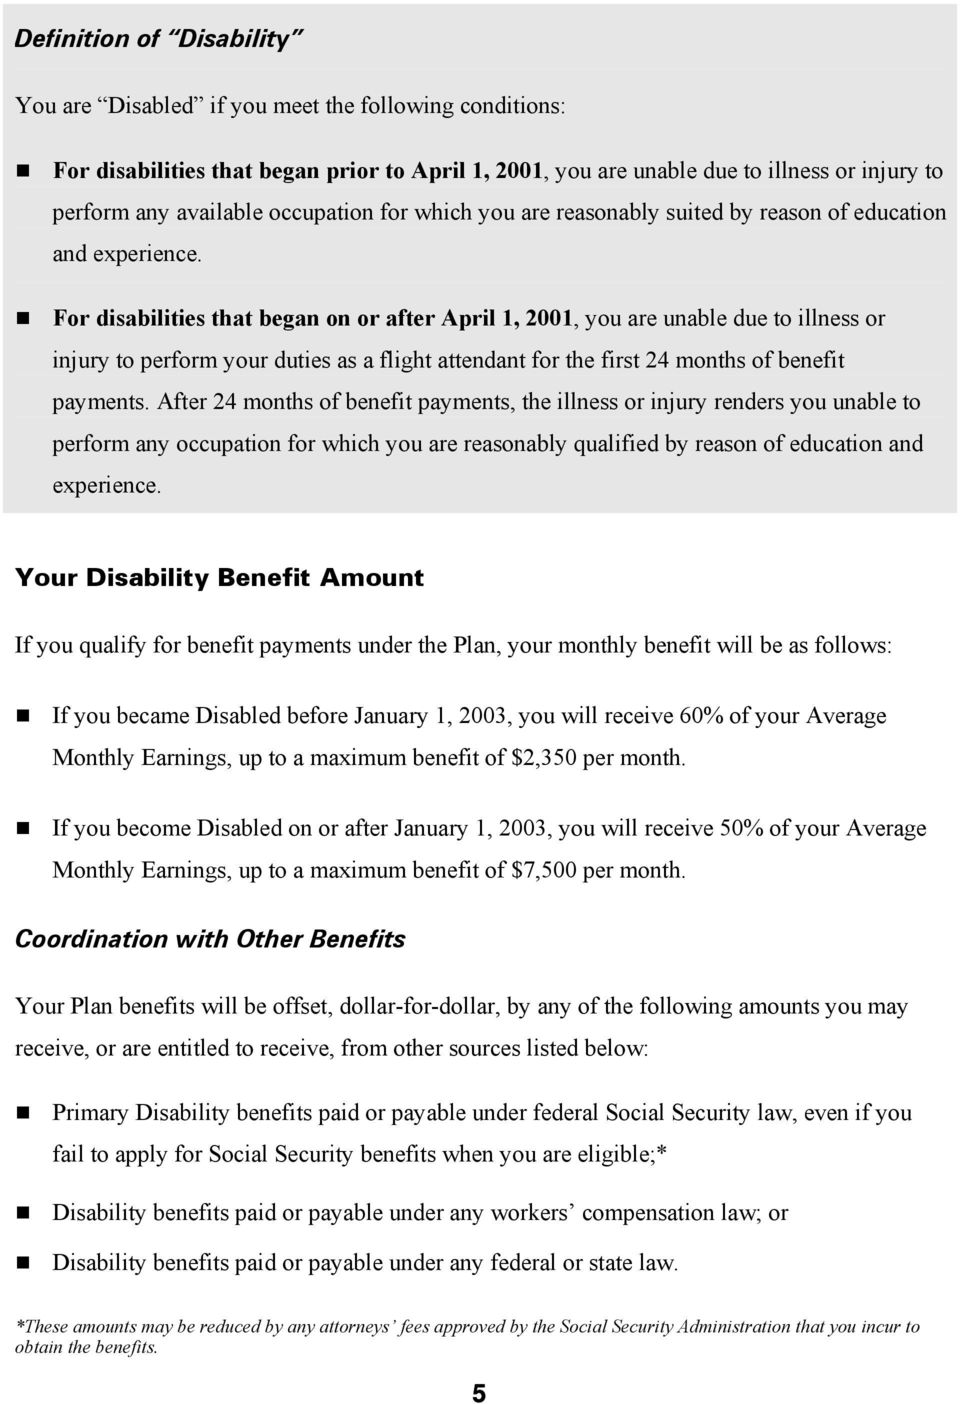 For disabilities that began on or after April 1, 2001, you are unable due to illness or injury to perform your duties as a flight attendant for the first 24 months of benefit payments.